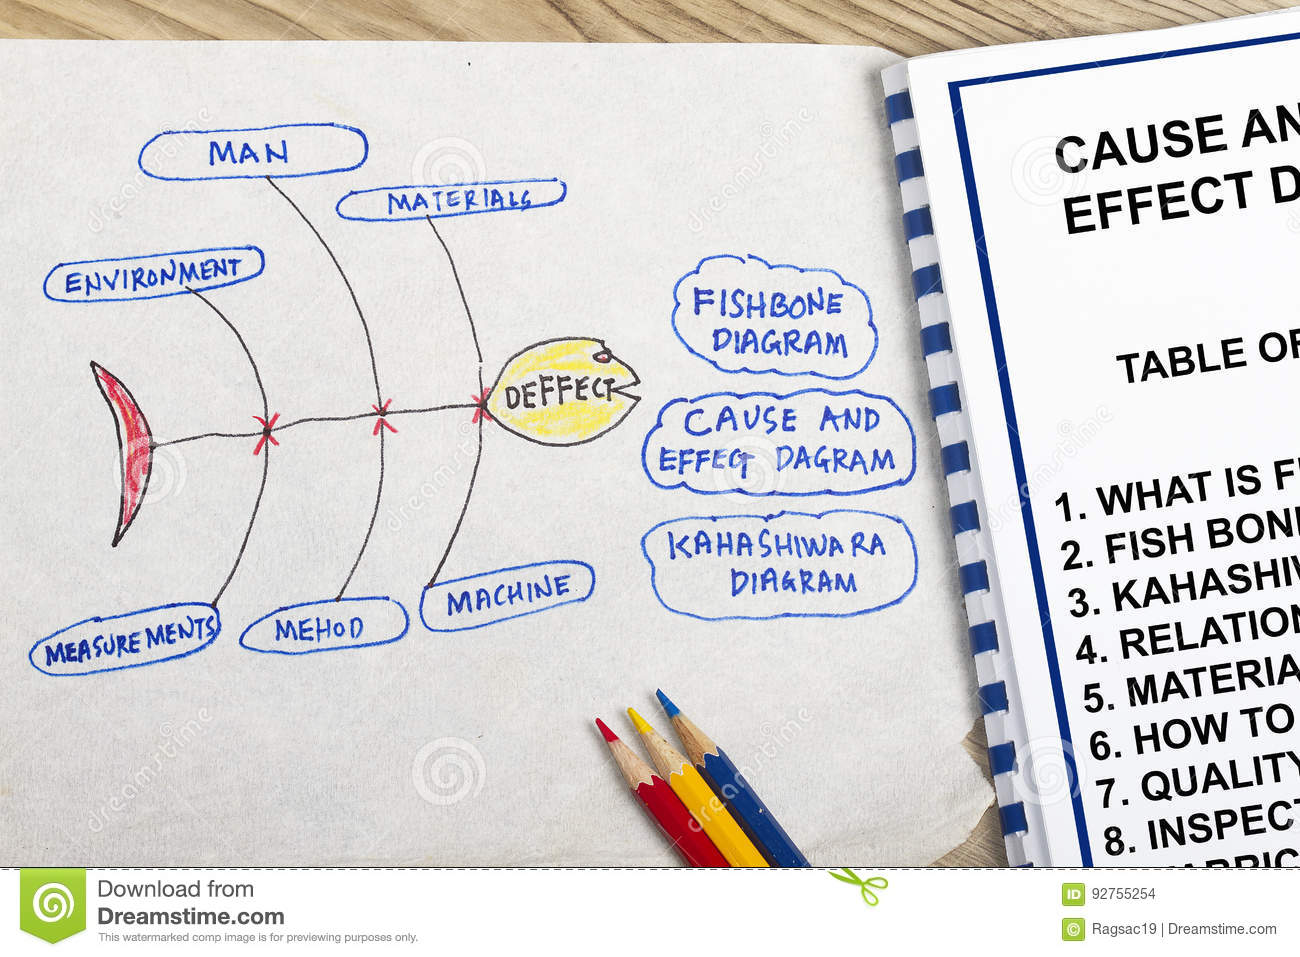 Cause and effect diagram stock photo image of mistake 92755254 download cause and effect diagram stock photo image of mistake 92755254 ccuart Images